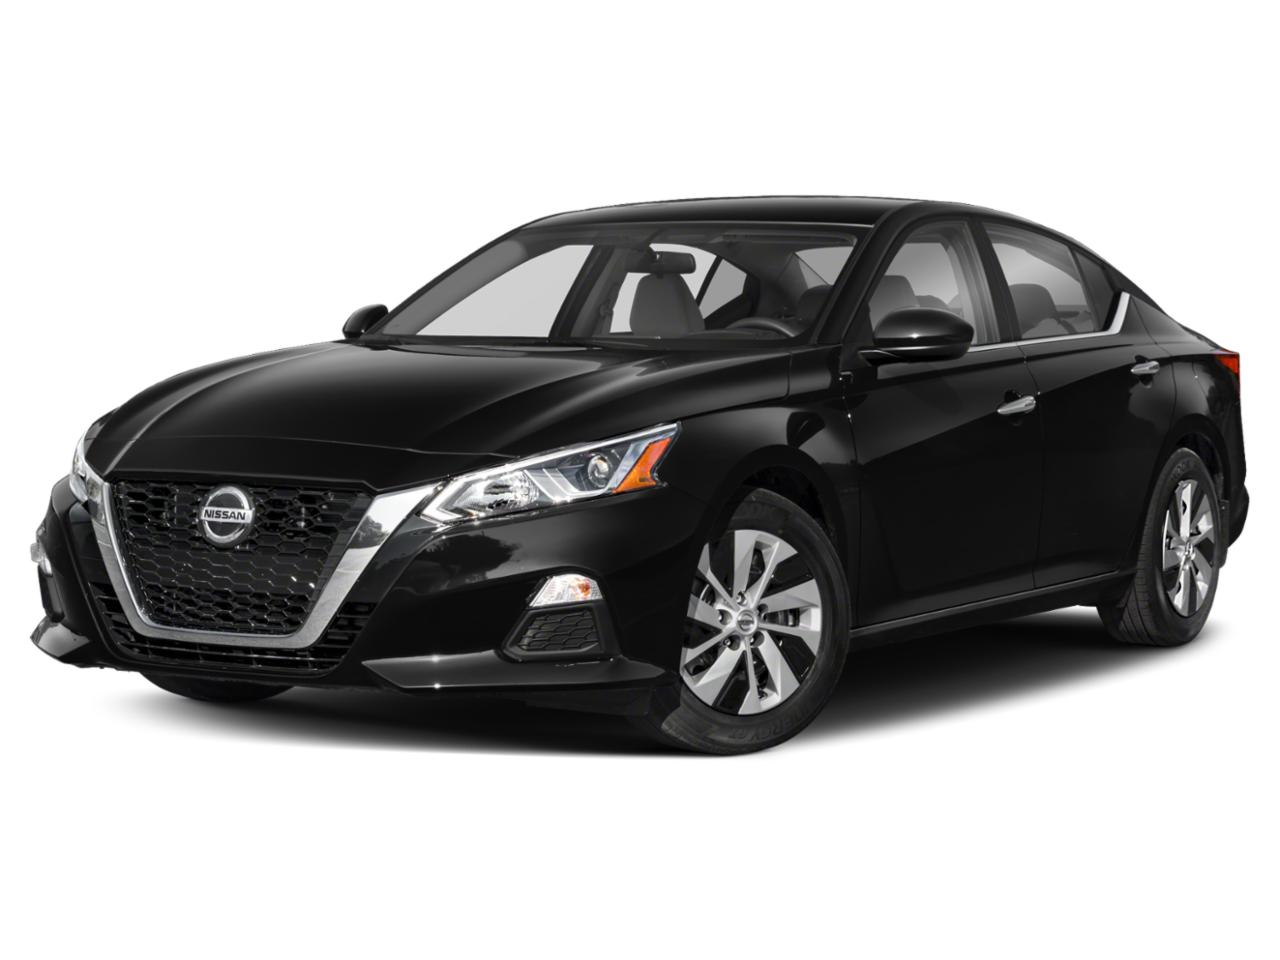 2020 Nissan Altima Vehicle Photo in Owensboro, KY 42303